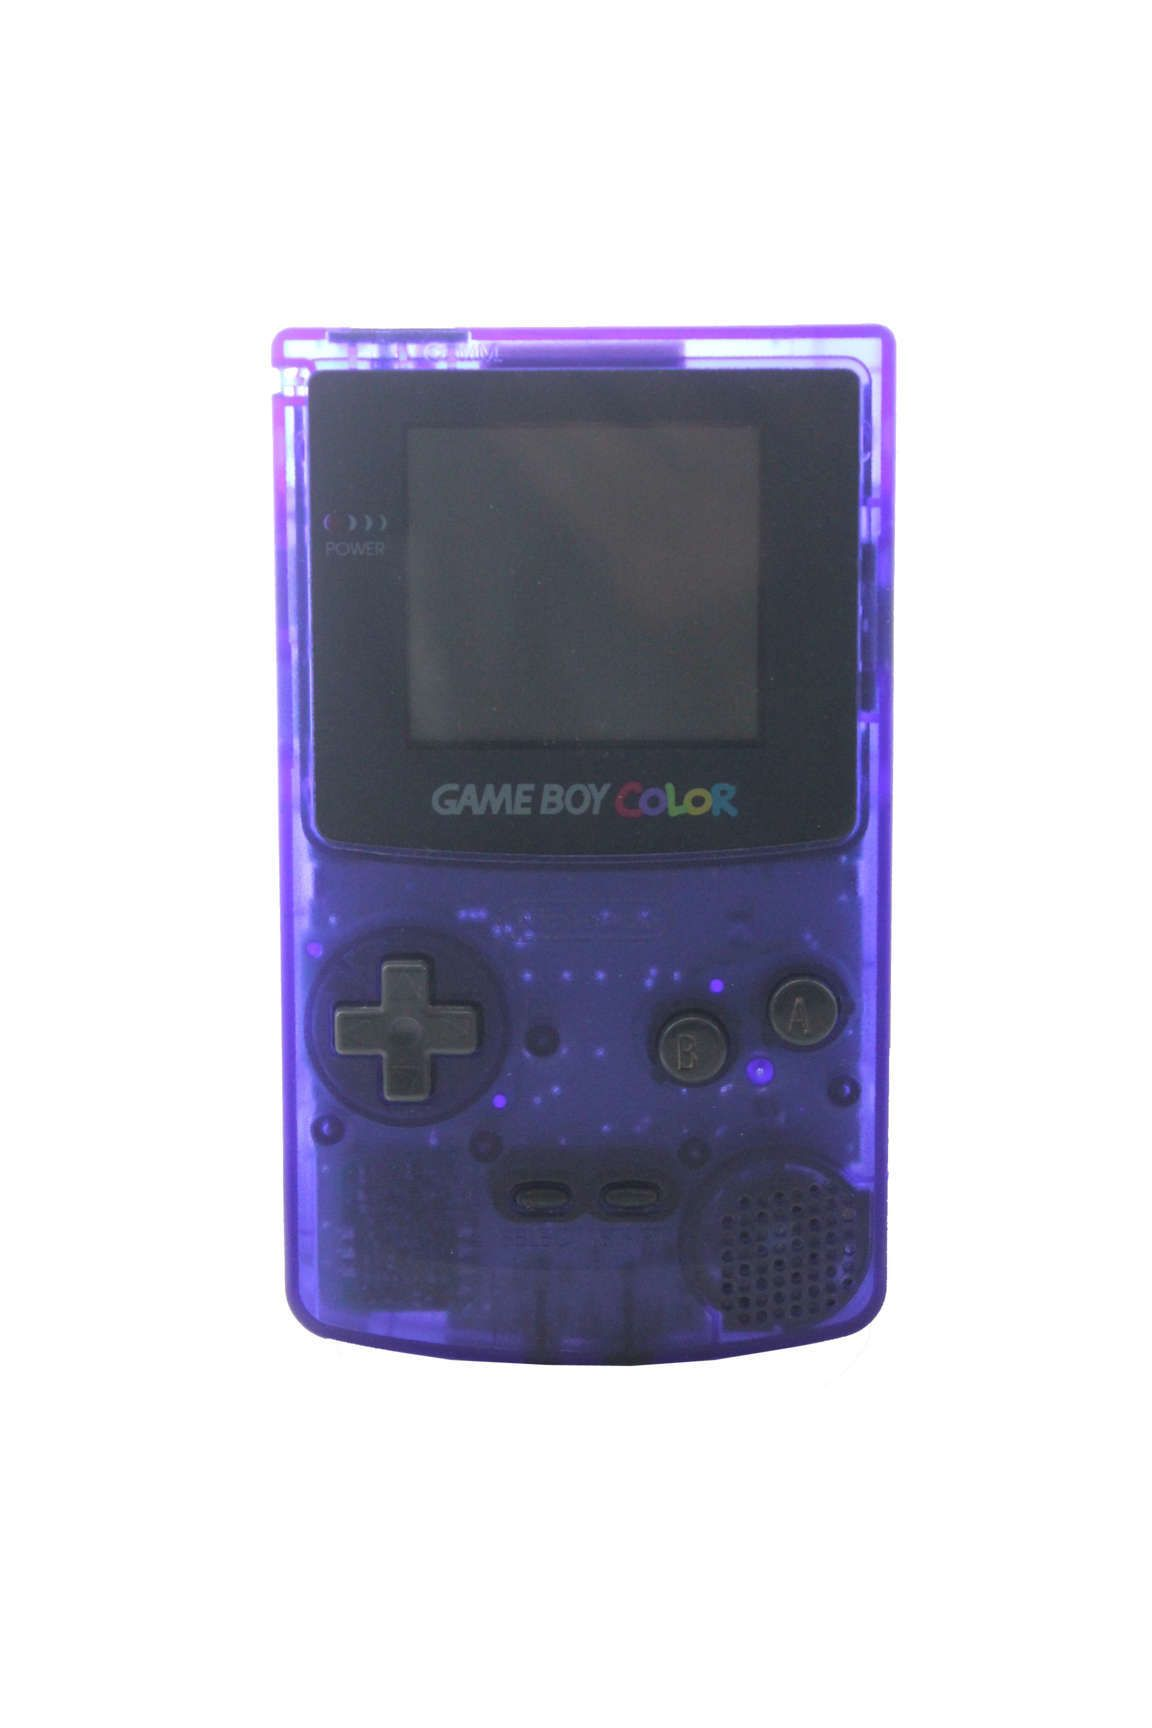 Handheld coloring games for toddlers - Console Gameboy Color Bleu Transparent Clear Blue